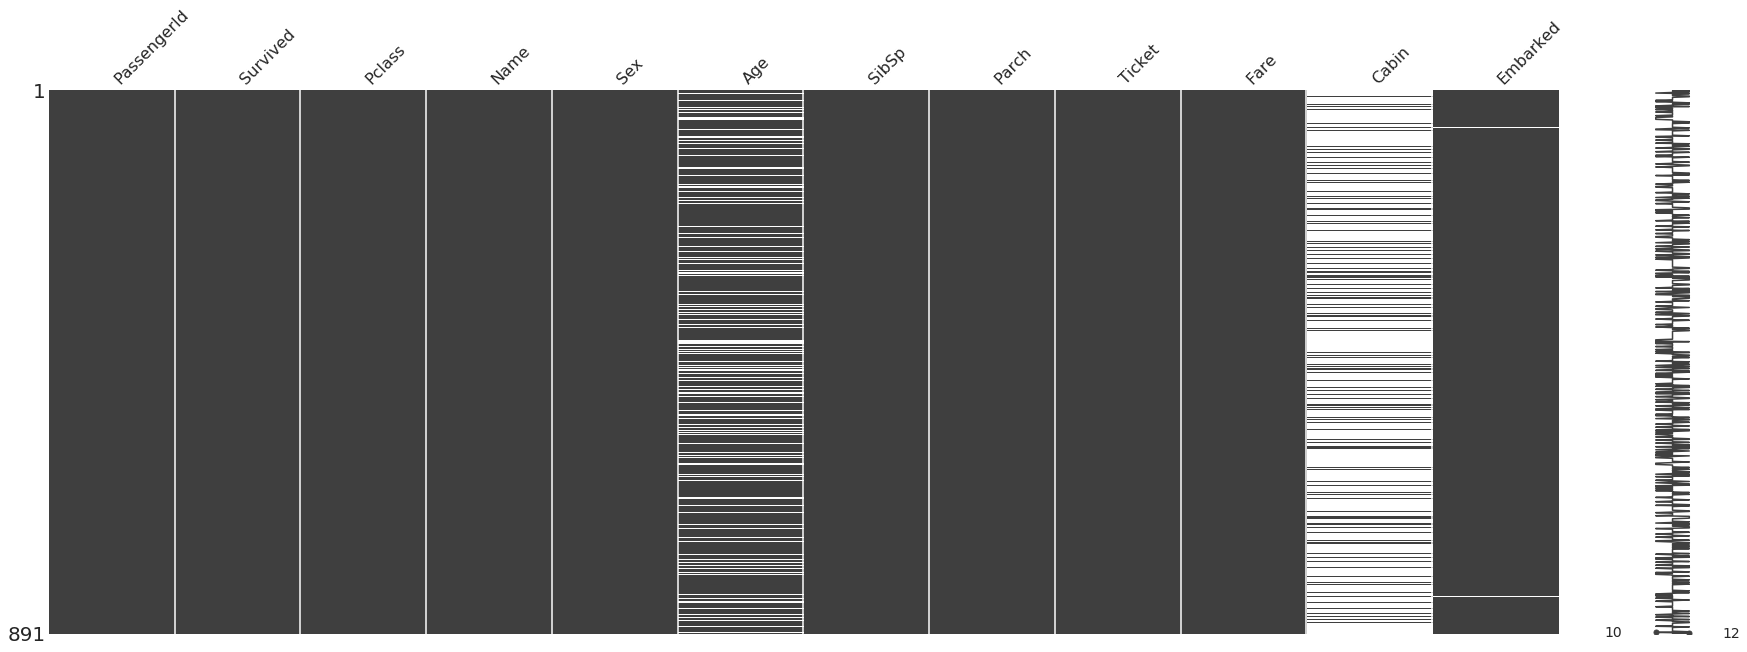 The  missingno library  is a great quick way to quickly and visually check for holes in your data, it detects where NaN values (or no values) appear and highlights them. White lines indicate missing values.